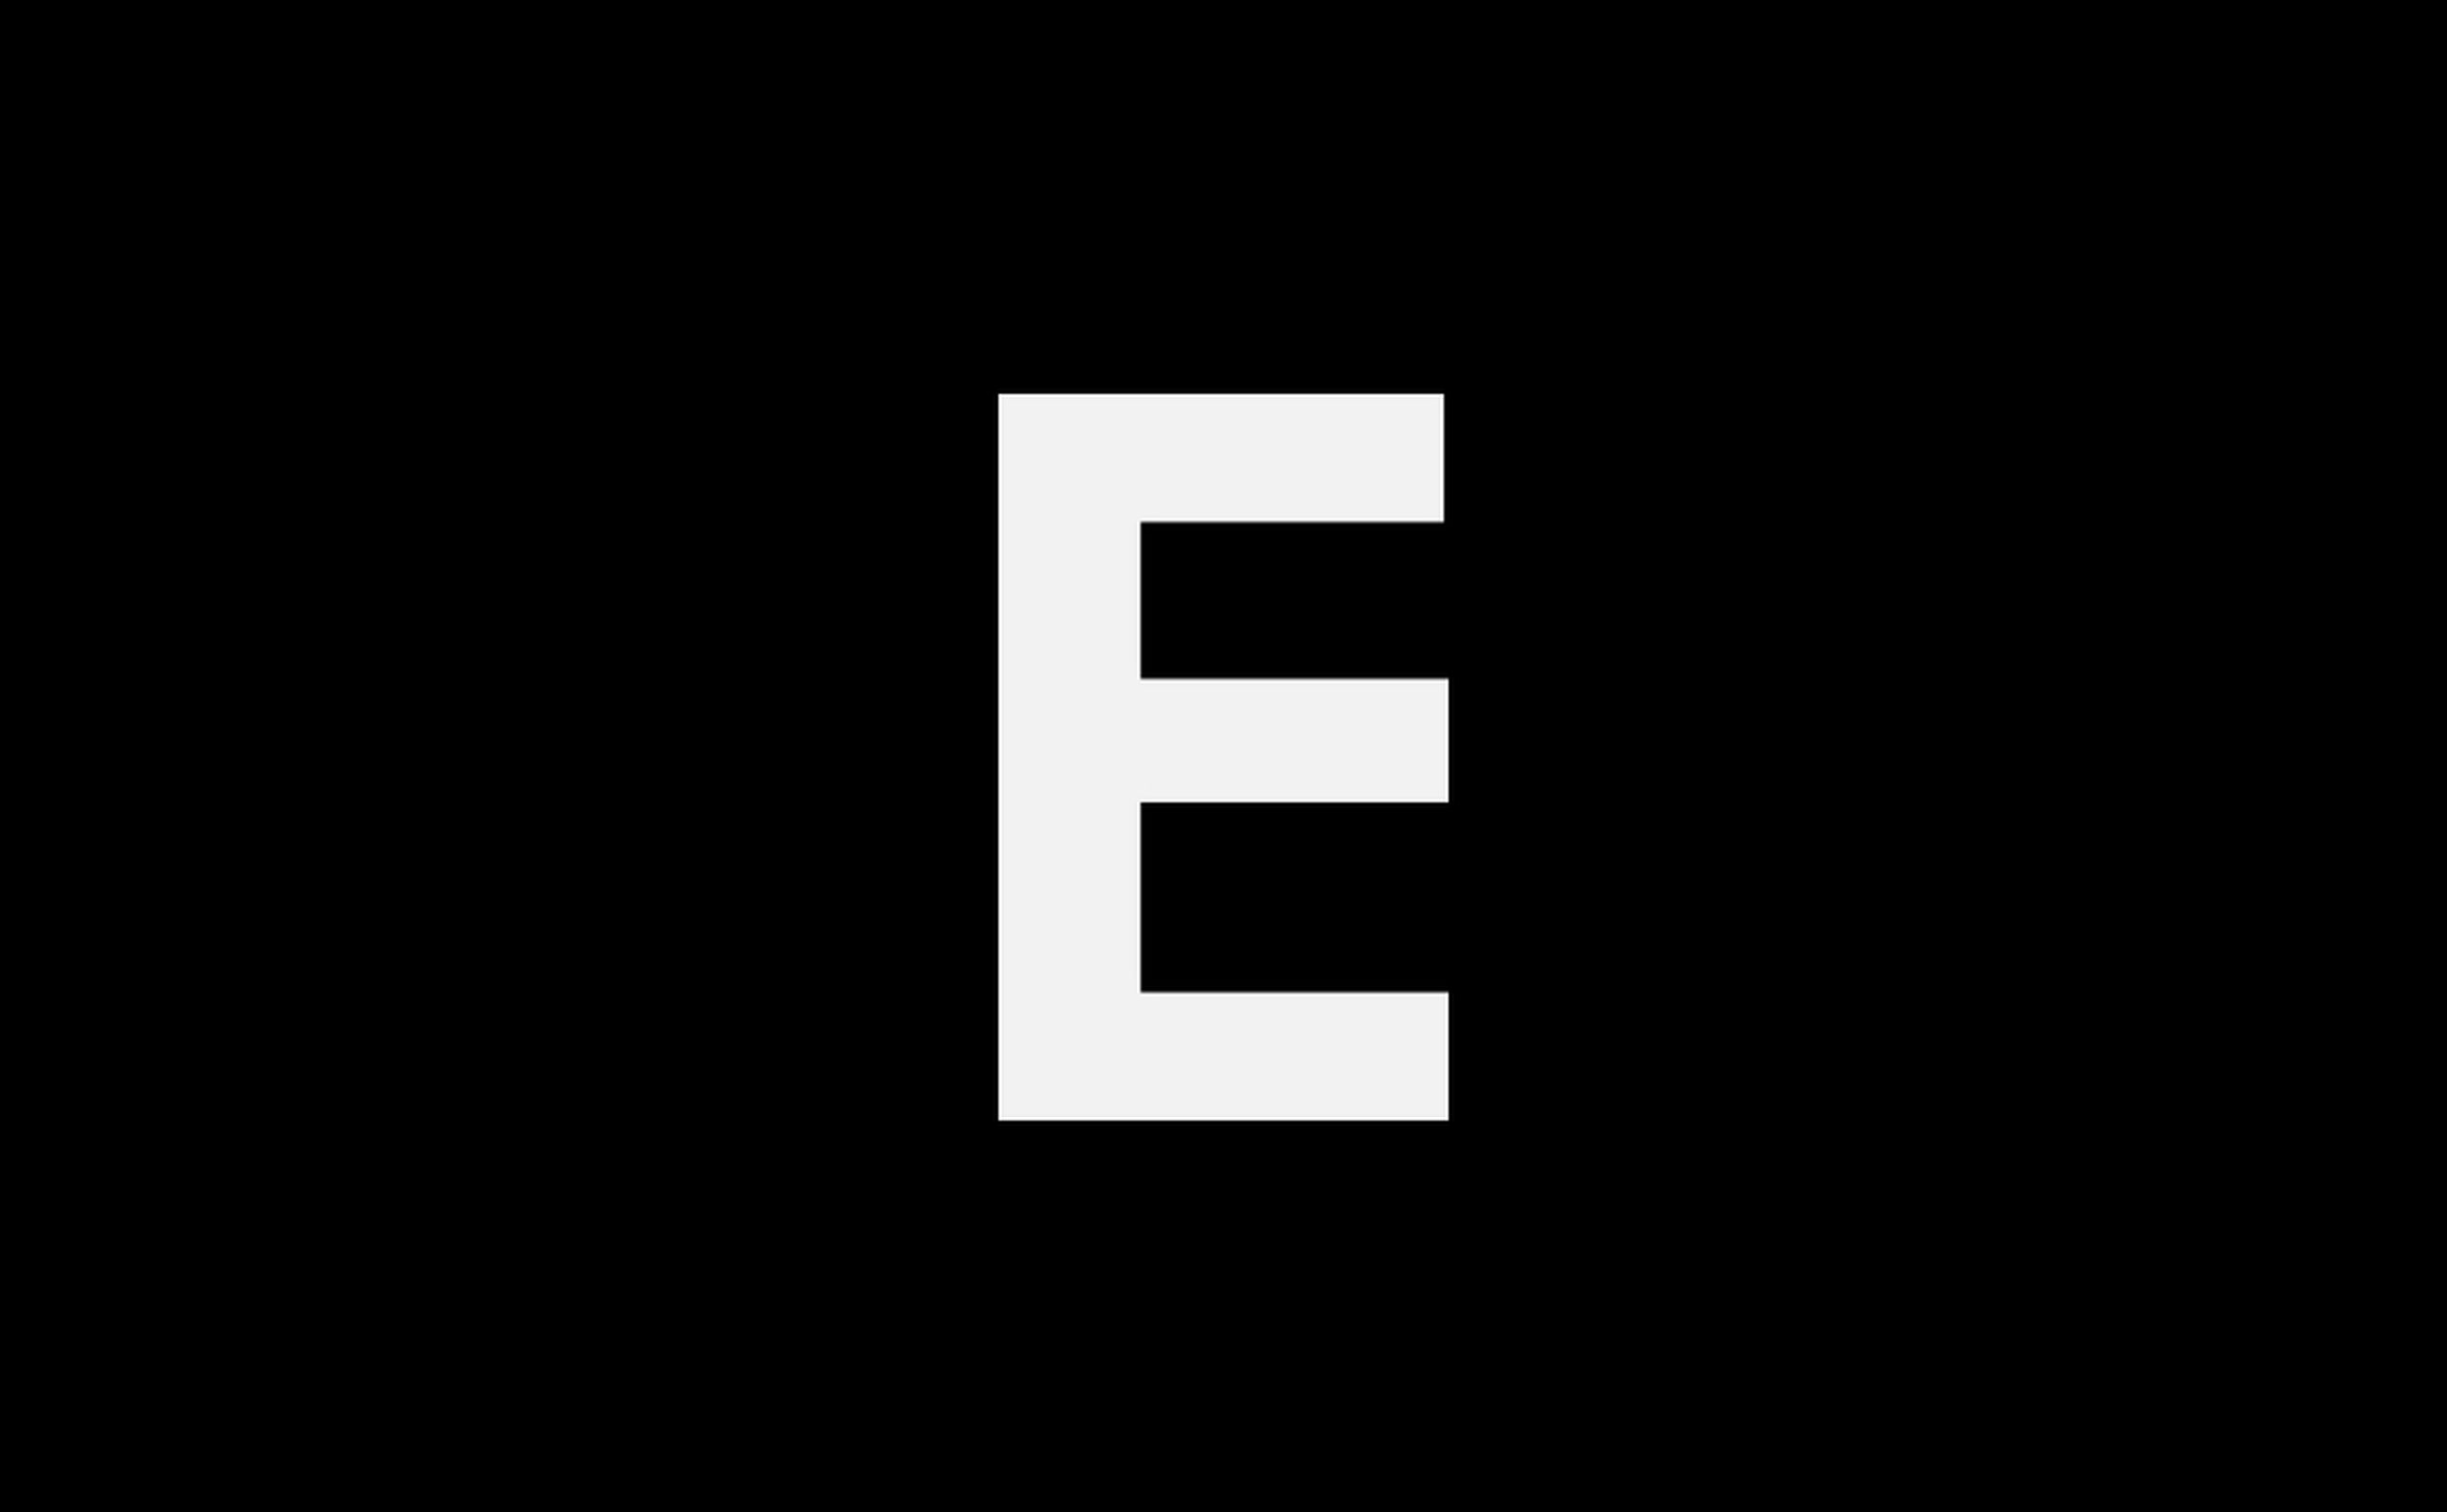 Ventilator of air conditioner on patterned wall